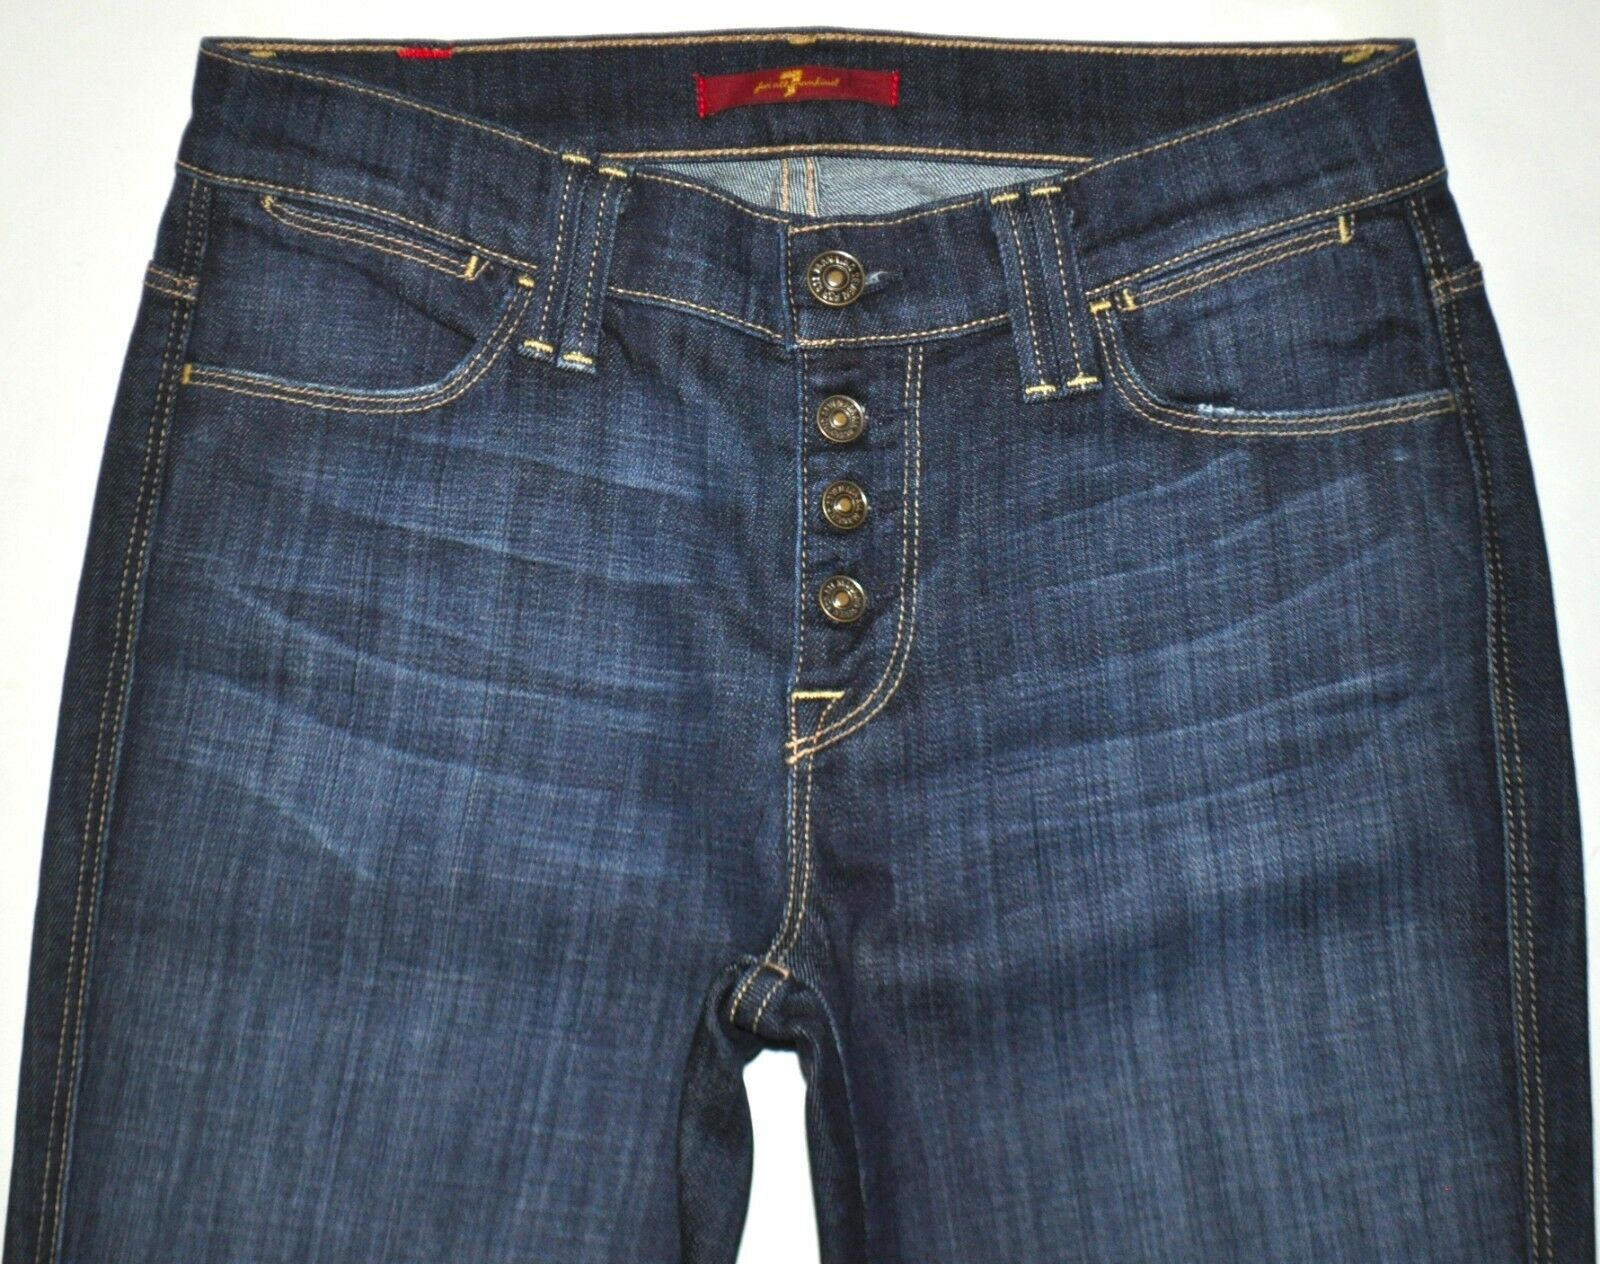 7 For All Mankind FAM Dark bluee Outer Button Fly Flare Jeans 25 X 30 Stretch EUC